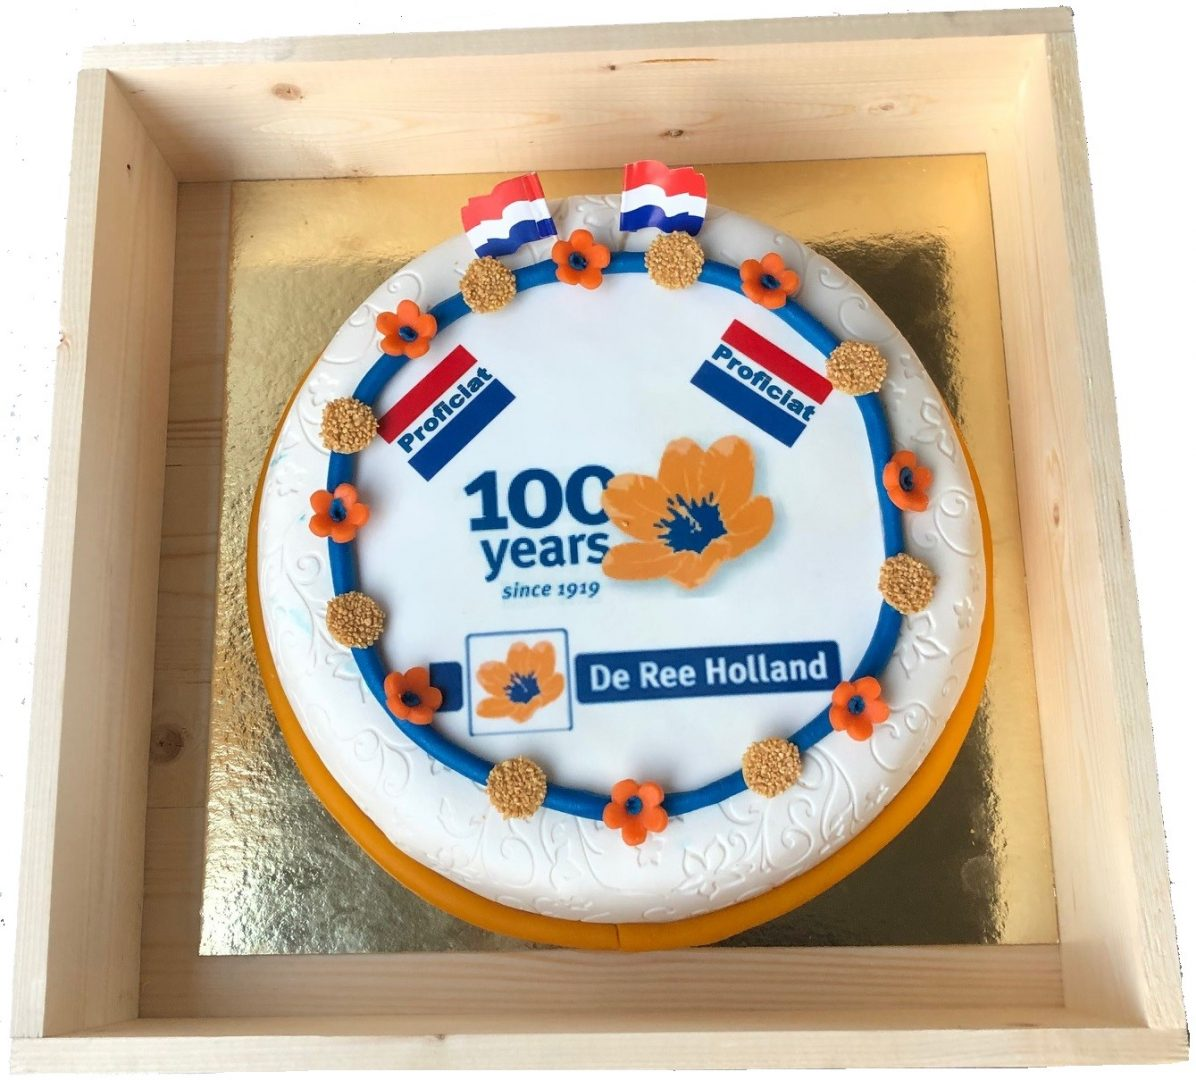 We congratulate De Ree Holland with their 100th anniversary and the Royal decoration they received!